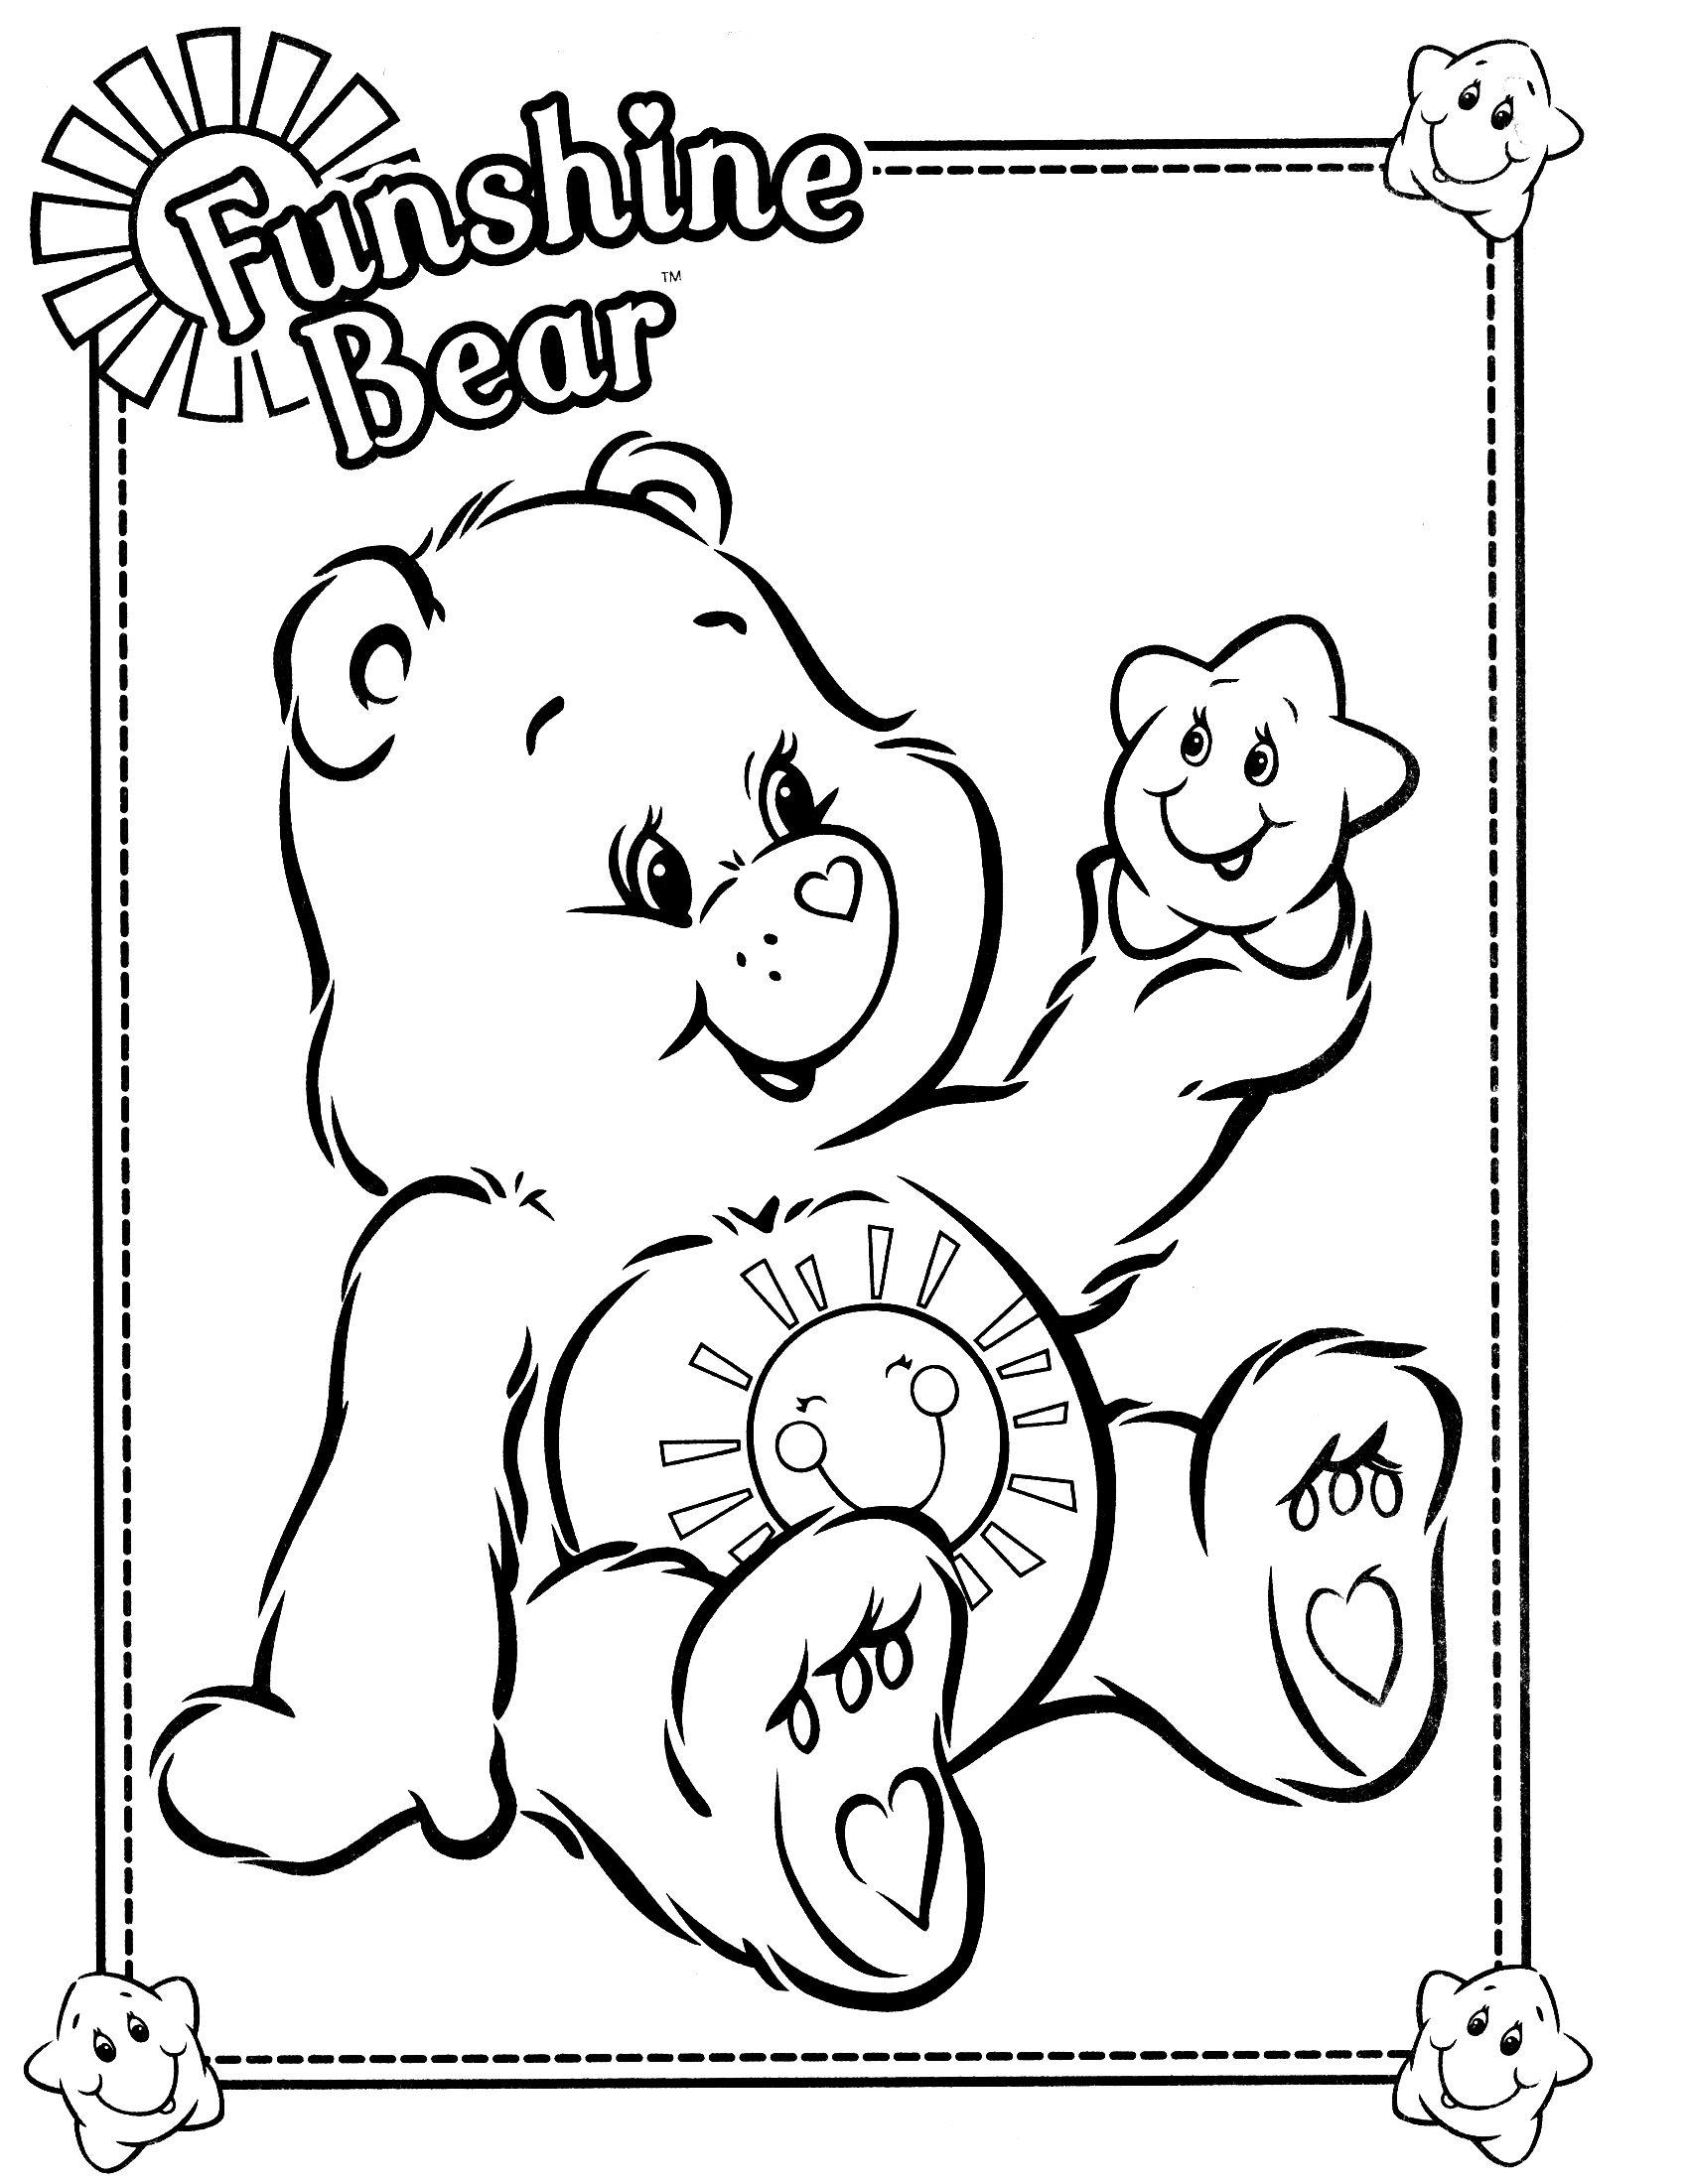 care bears coloring page care bears cousins Pinterest Care